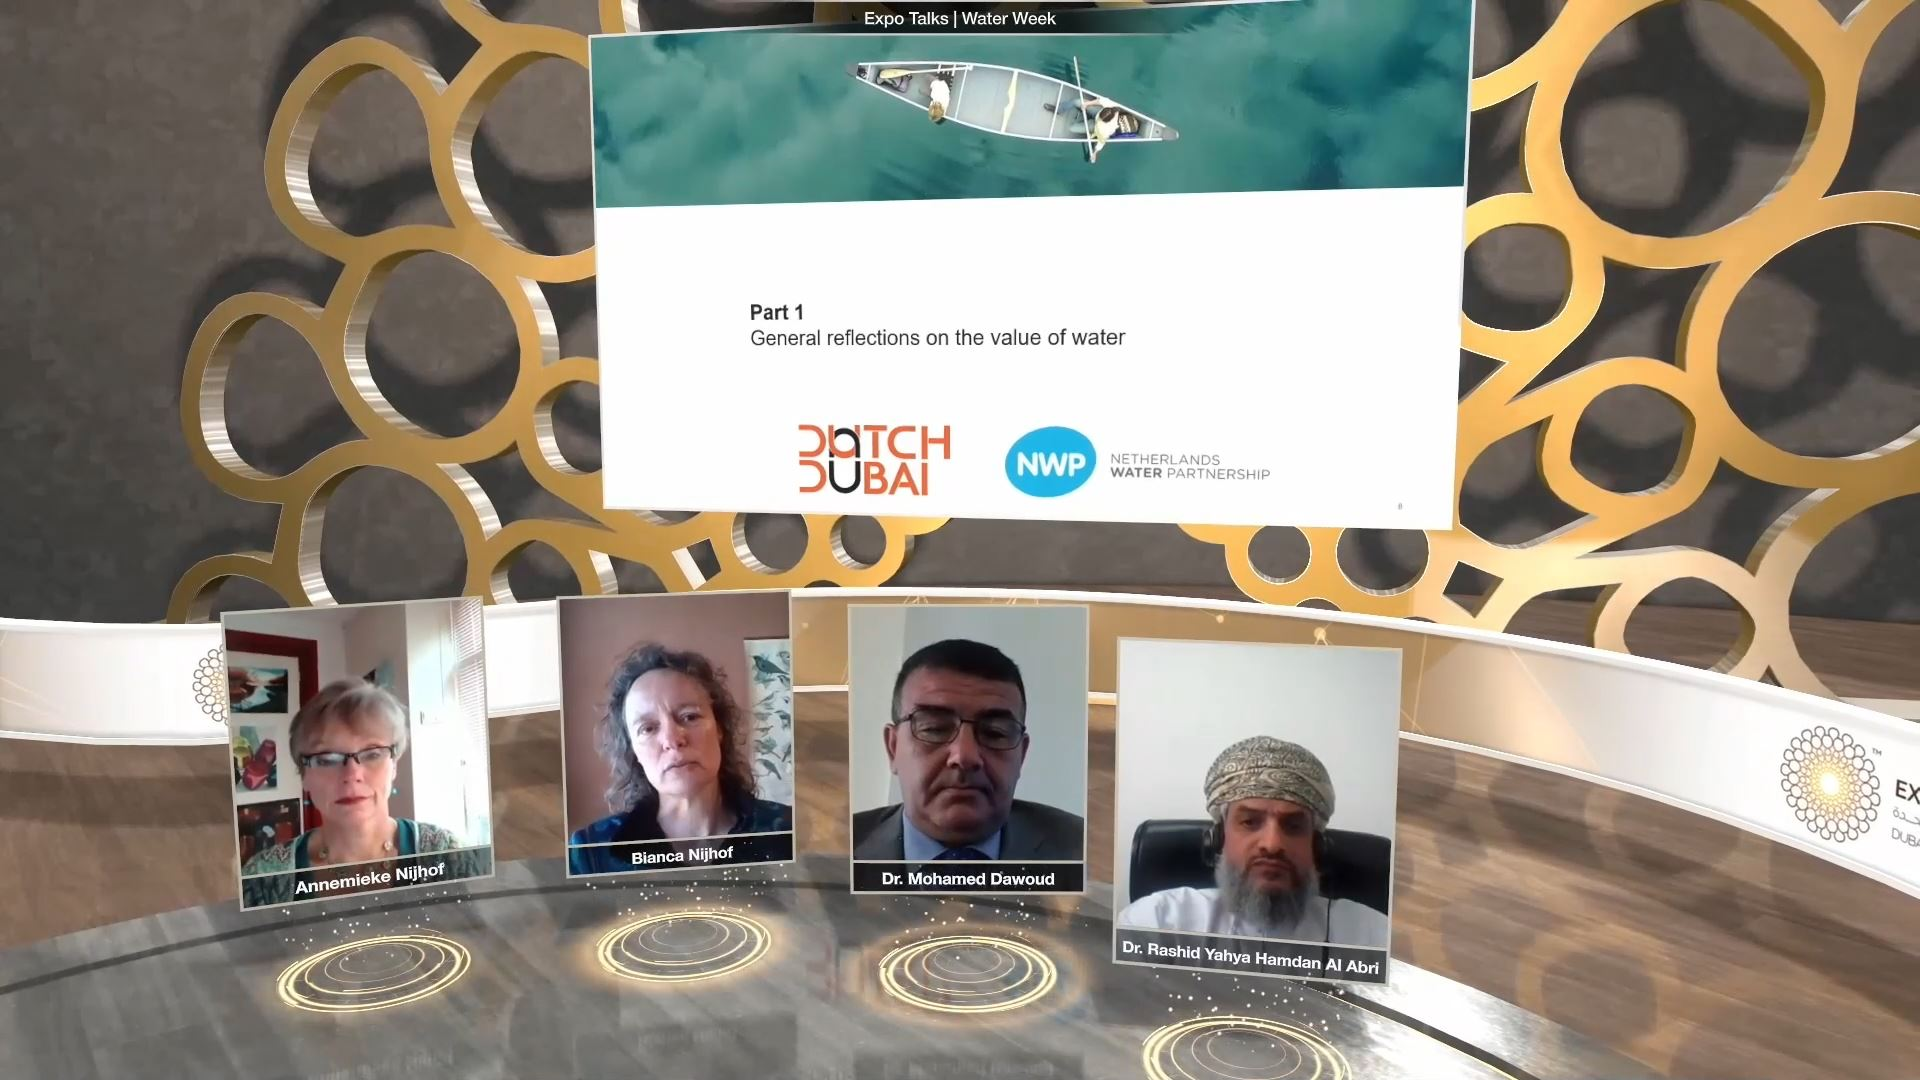 expo 2020 thematic weeks virtual event panel discussion with screen